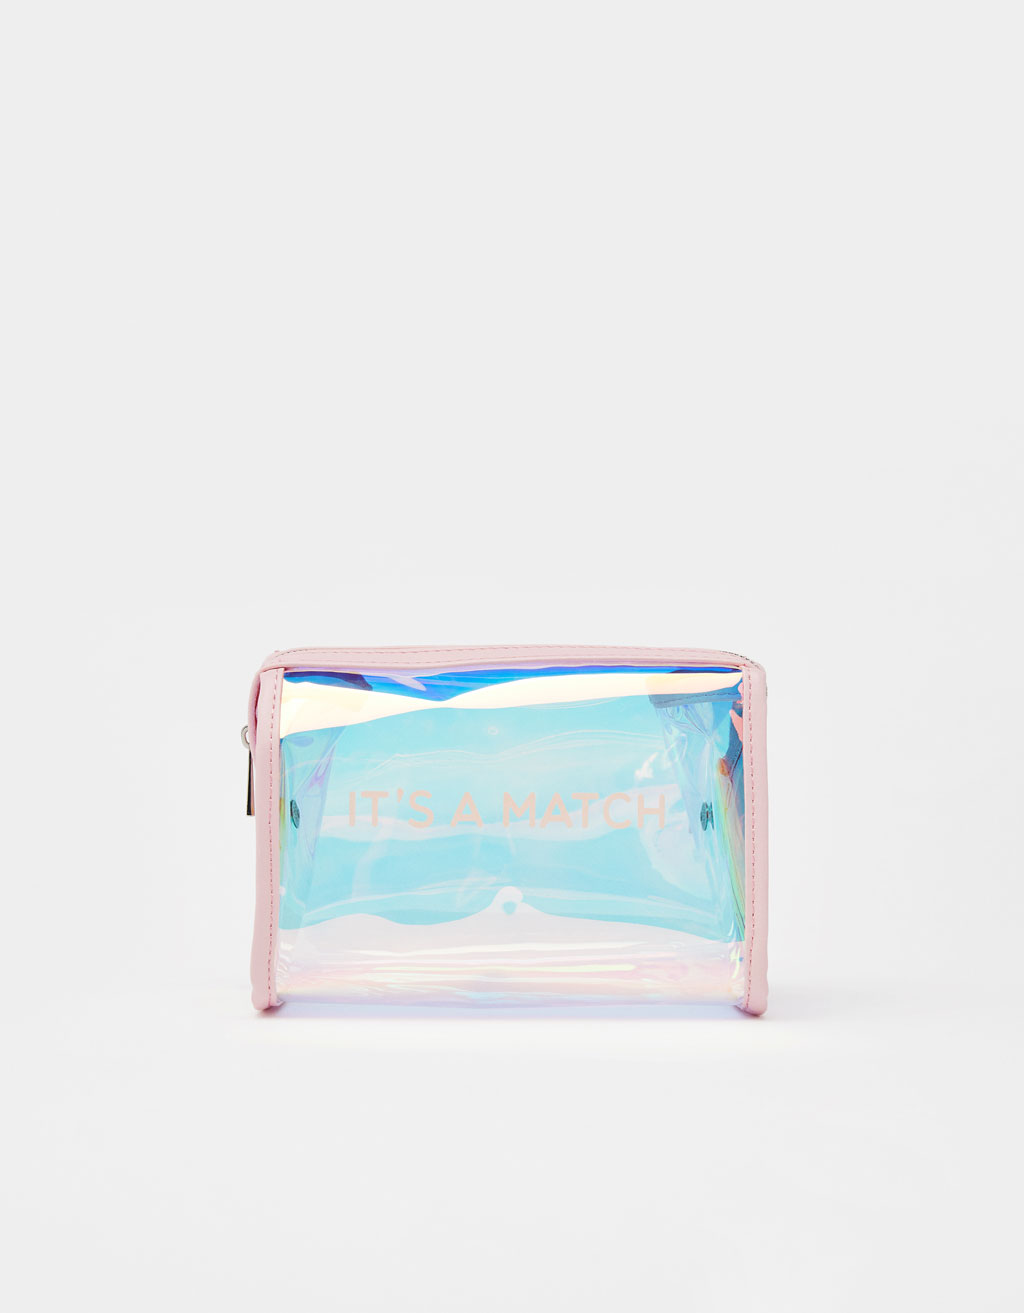 Iridescent toiletry bag